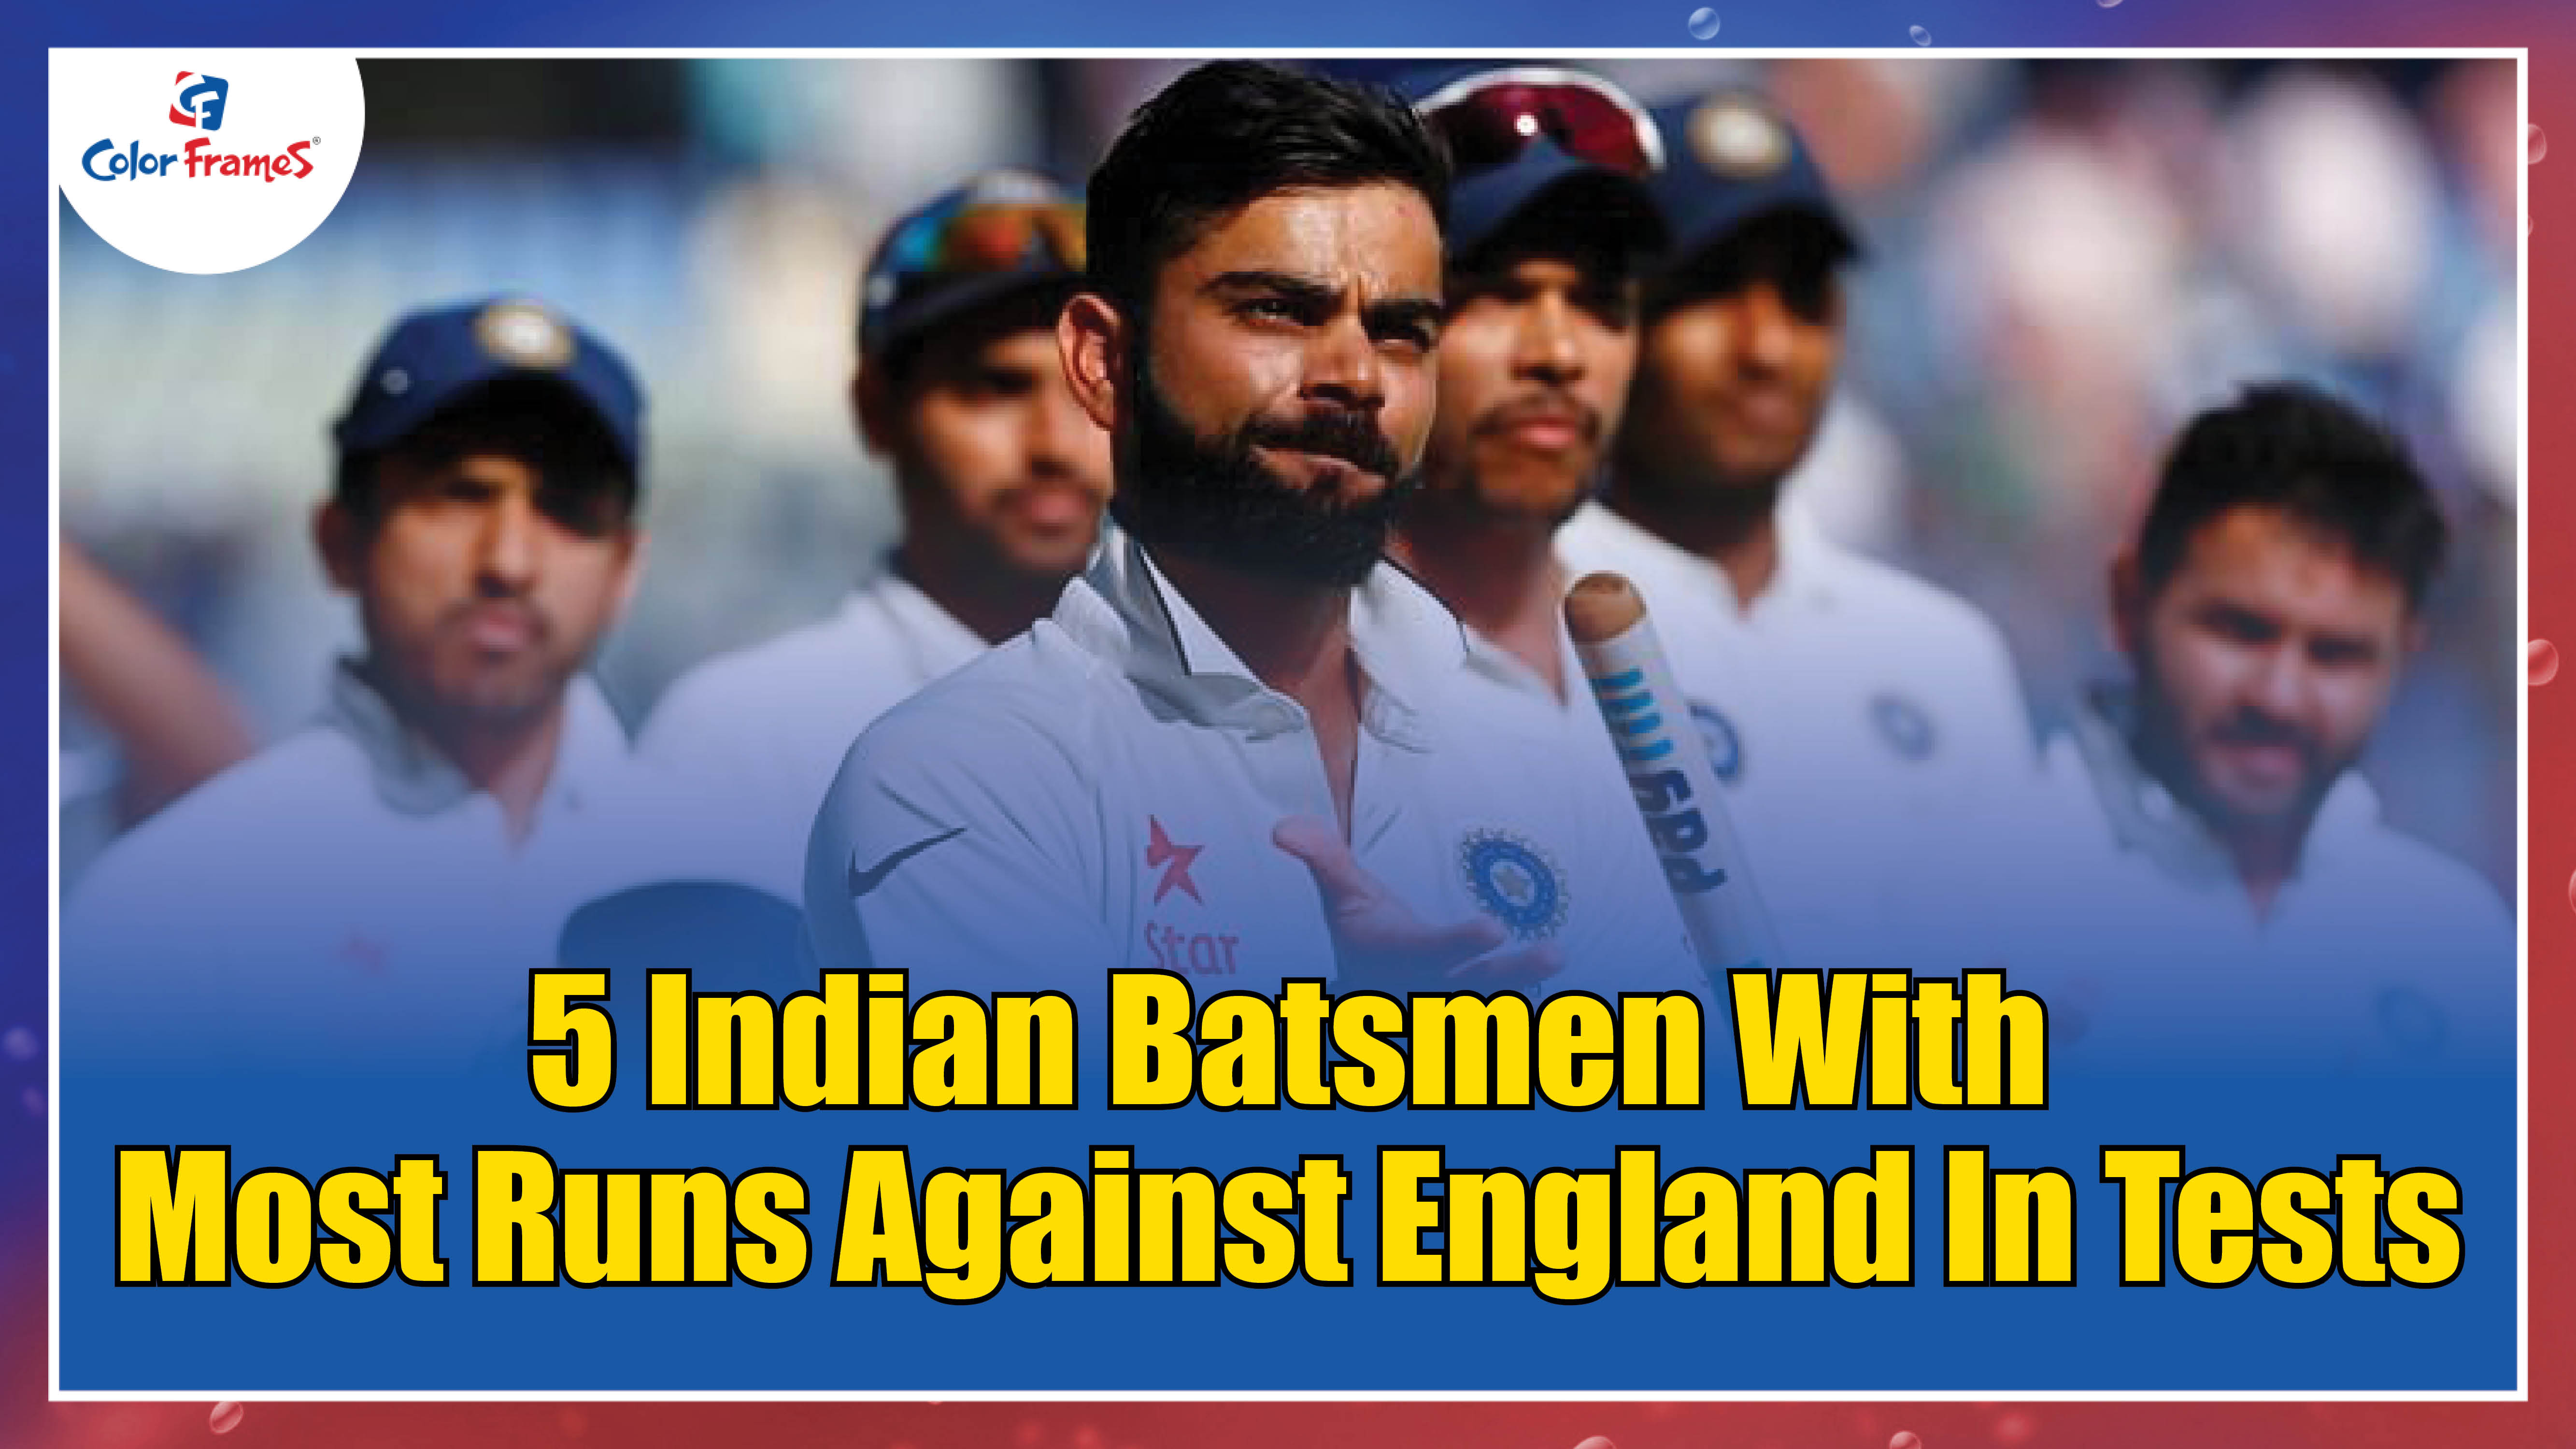 5 Indian Batsmen with Most Runs against England in Tests!